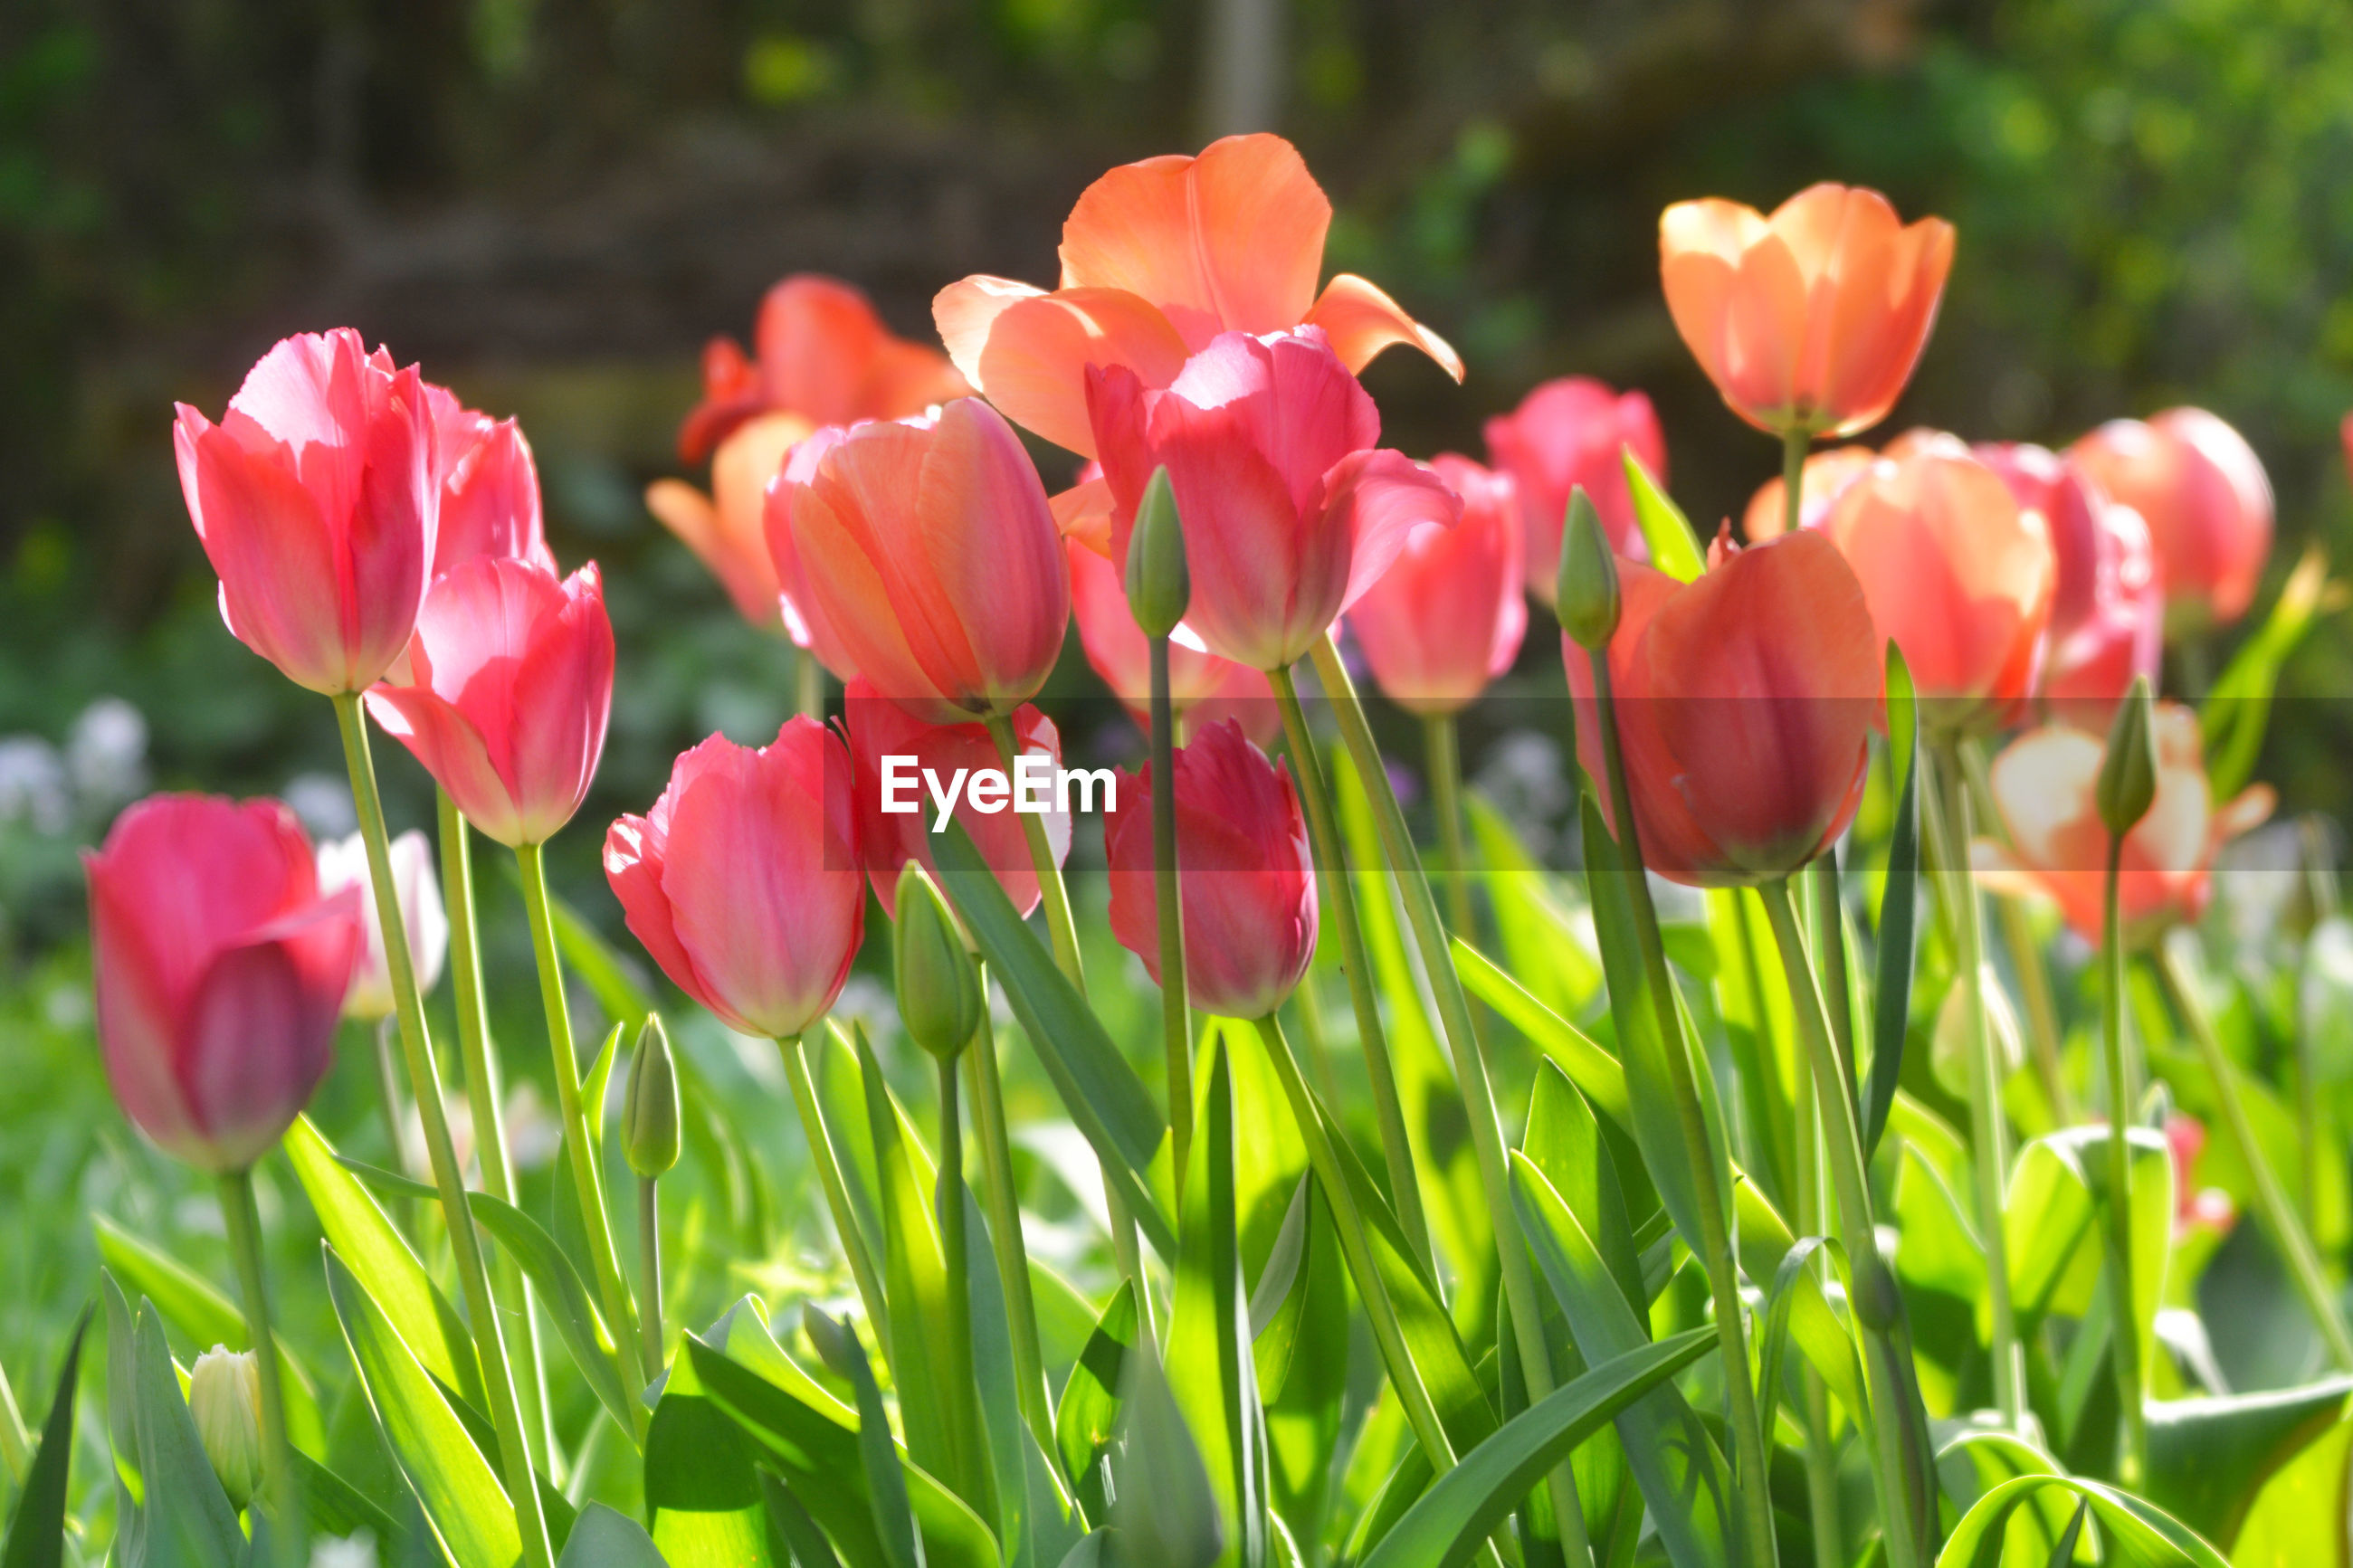 CLOSE-UP OF TULIPS